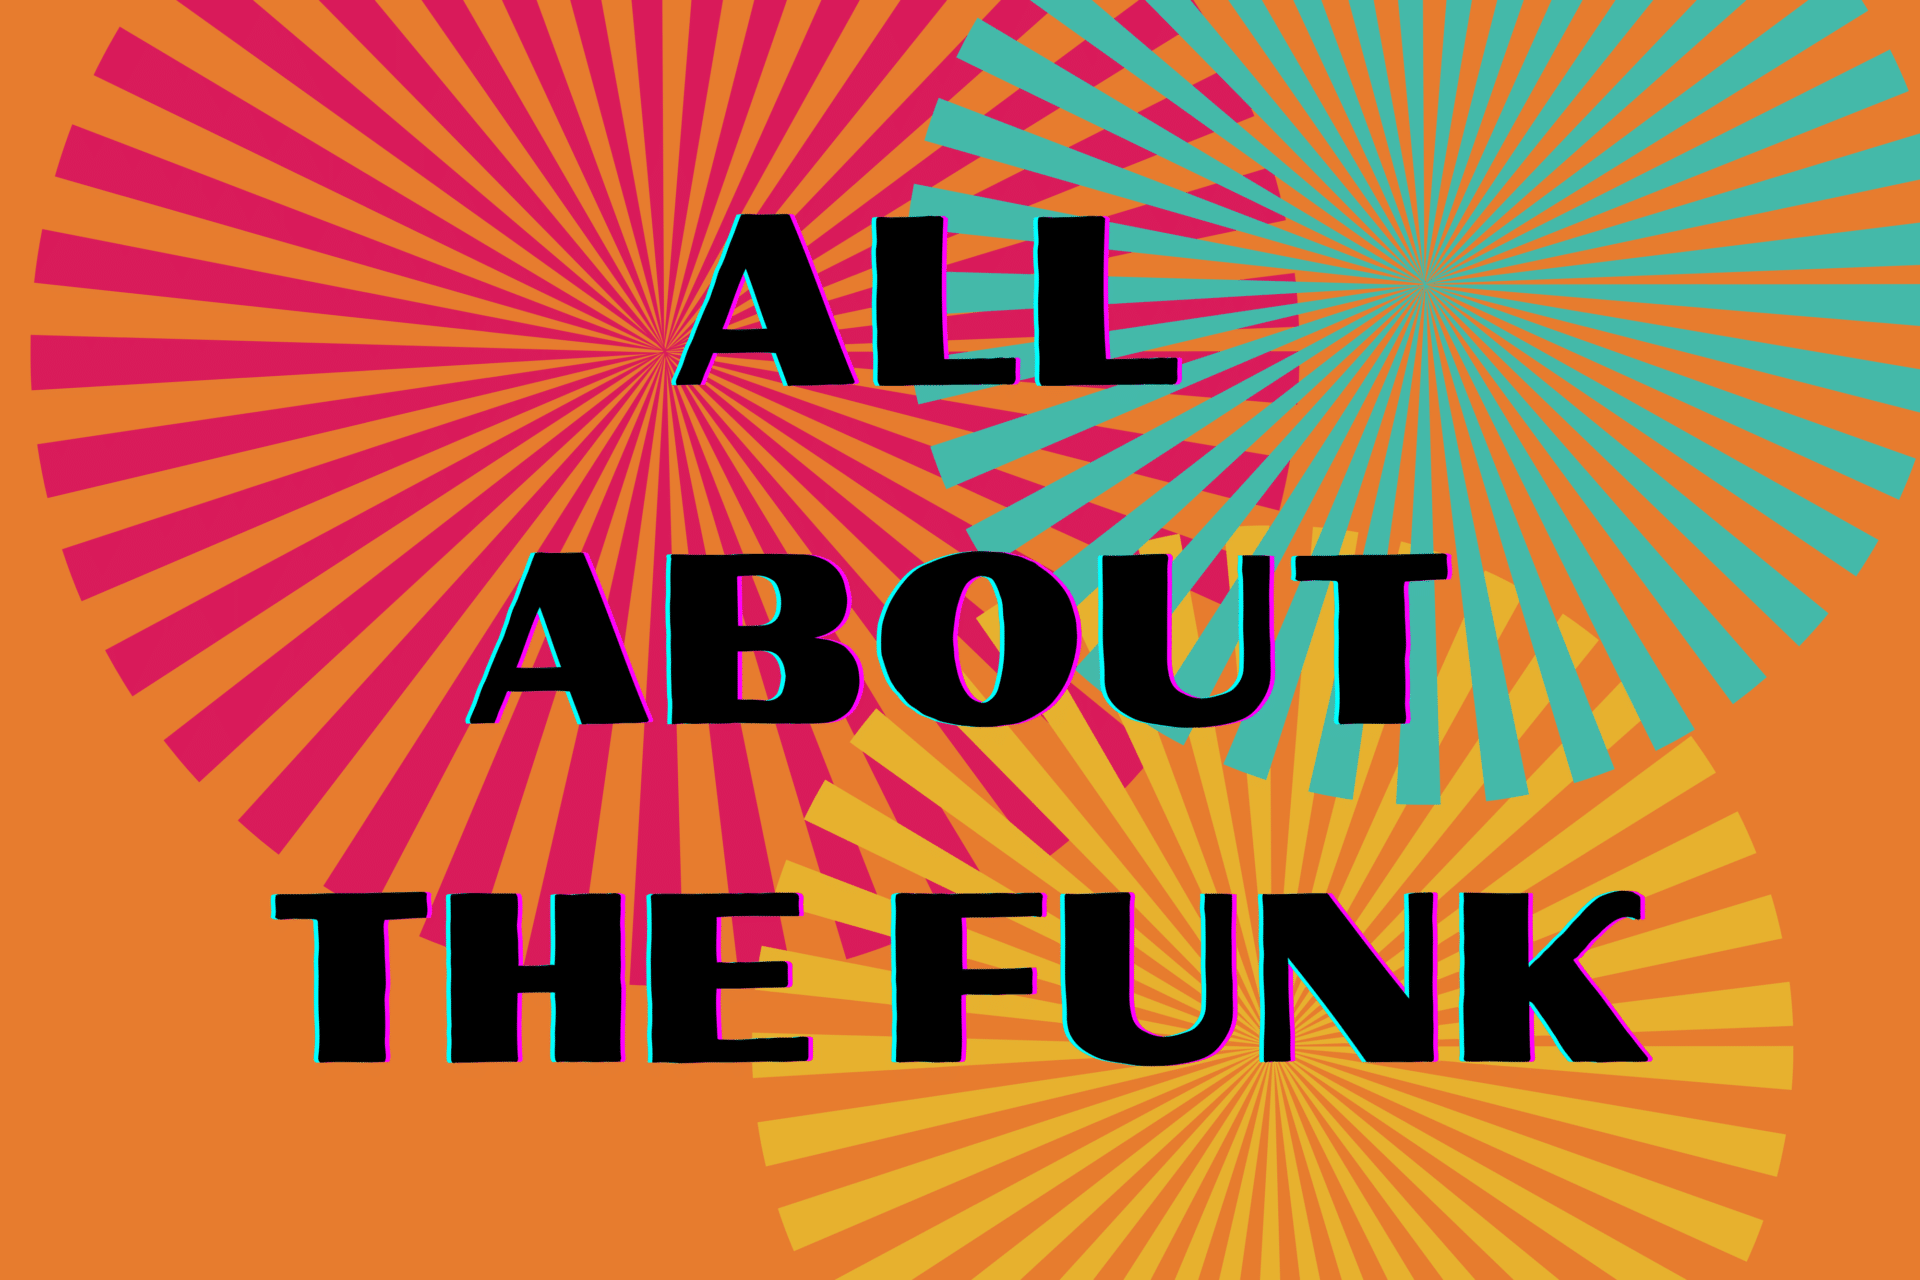 All About The Funk Show Image